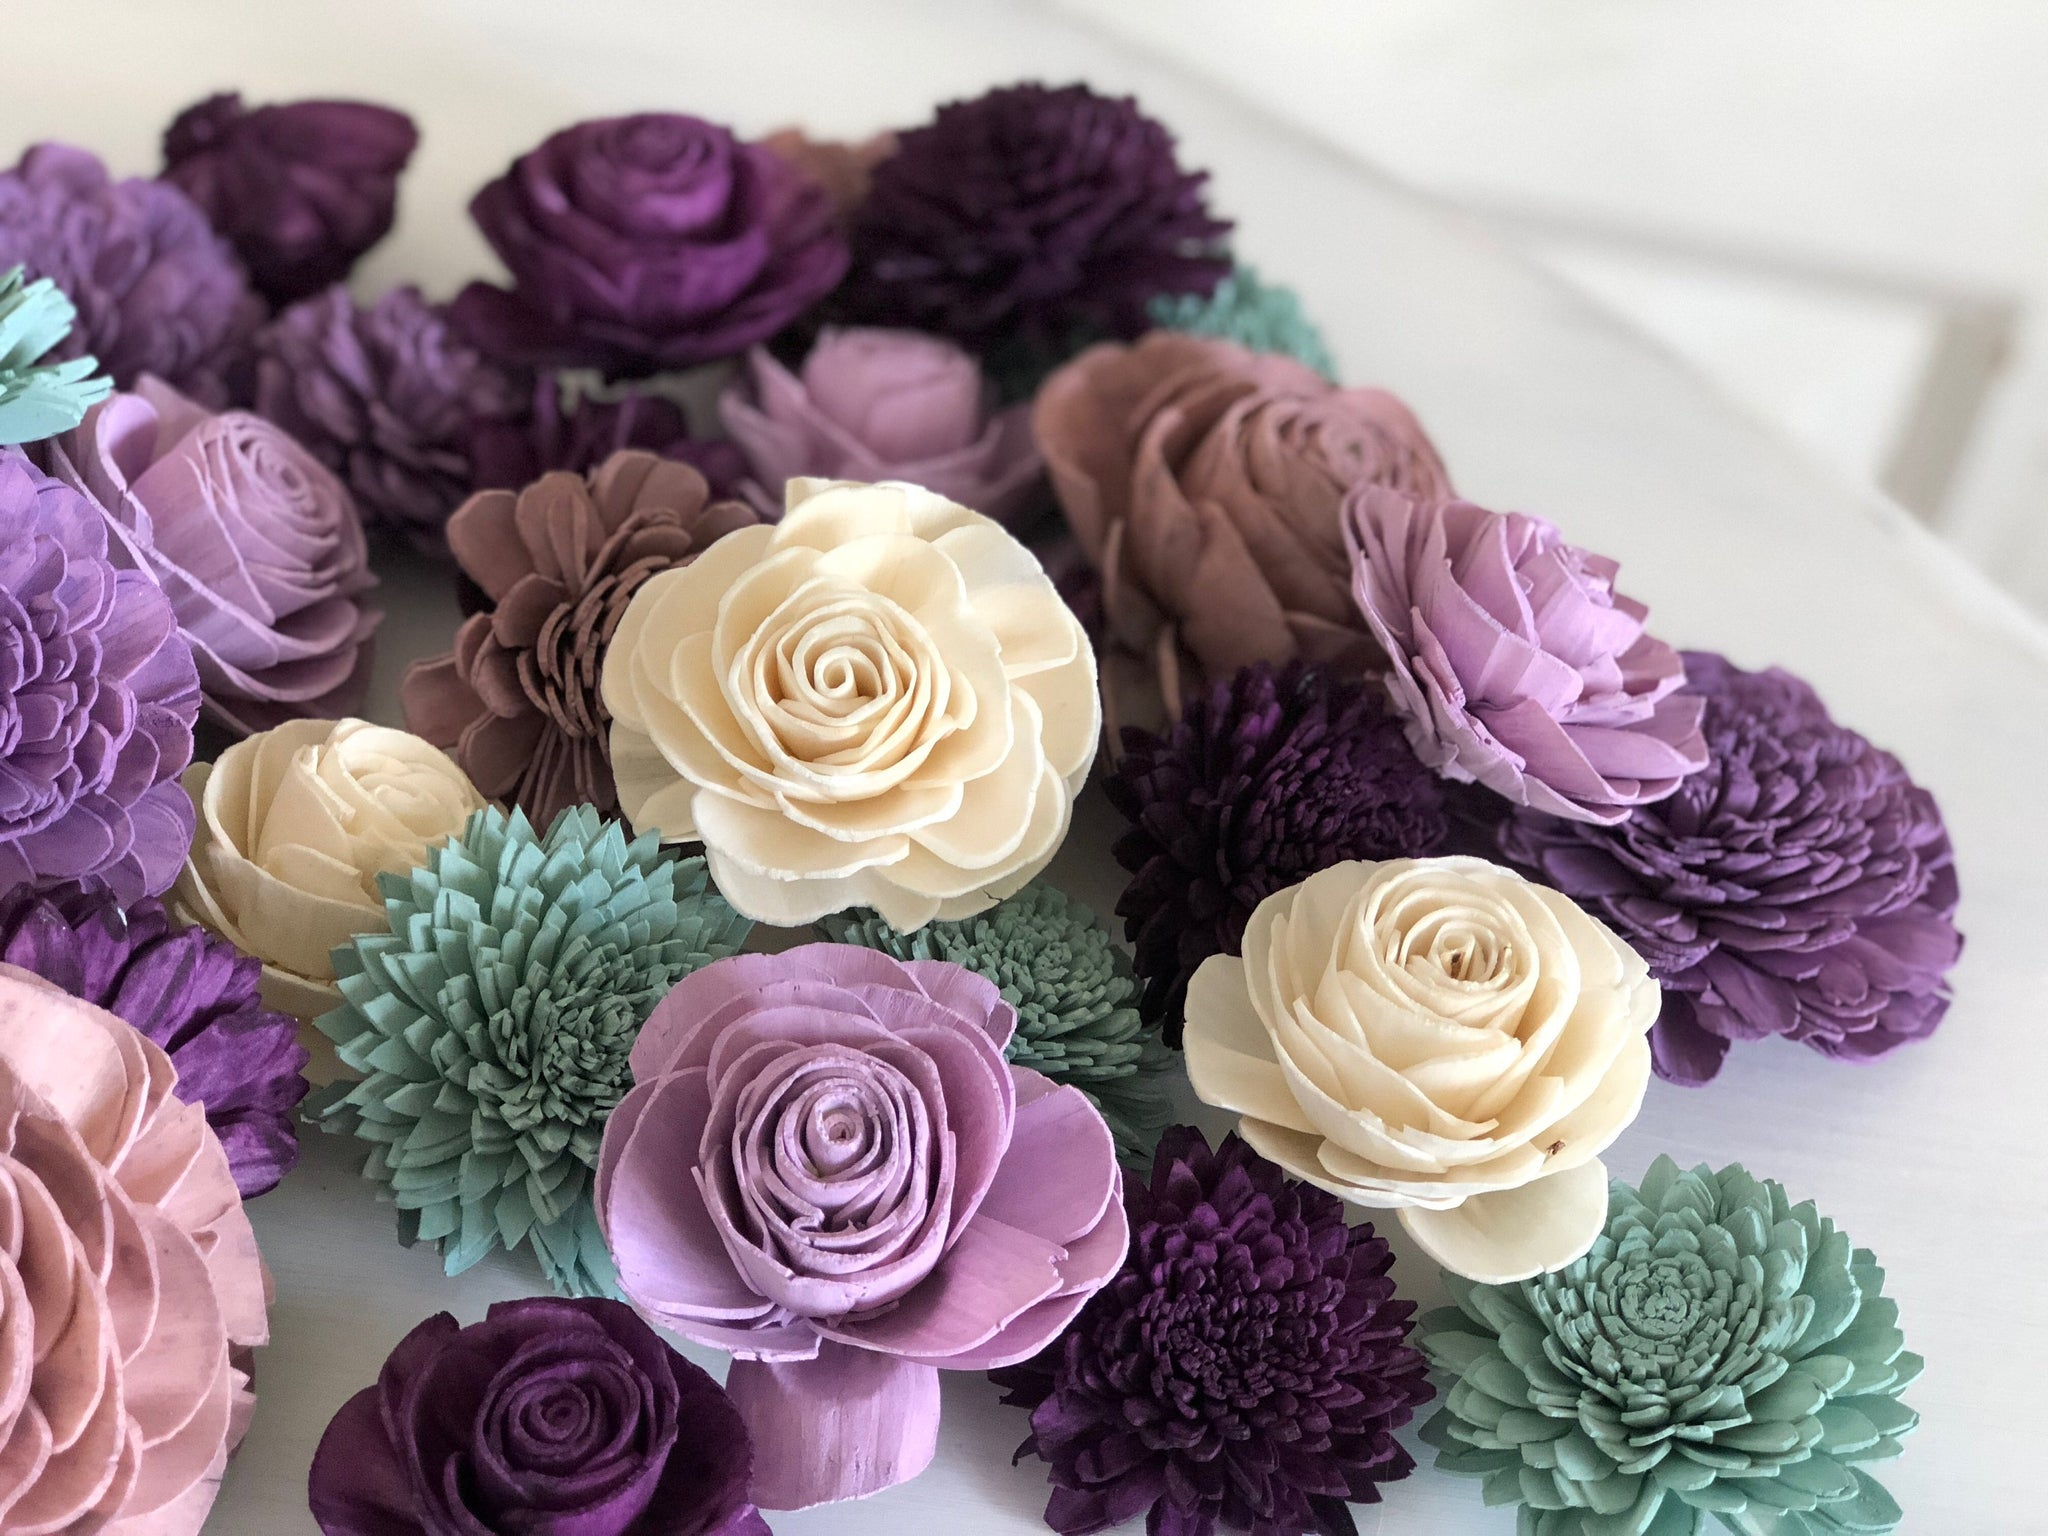 Loose Flowers Napa Valley - Wood Flower - Sola Flowers - Purples and Green -  Bulk Sola Flowers  - Wedding Flowers - Pine and Petal - Sola